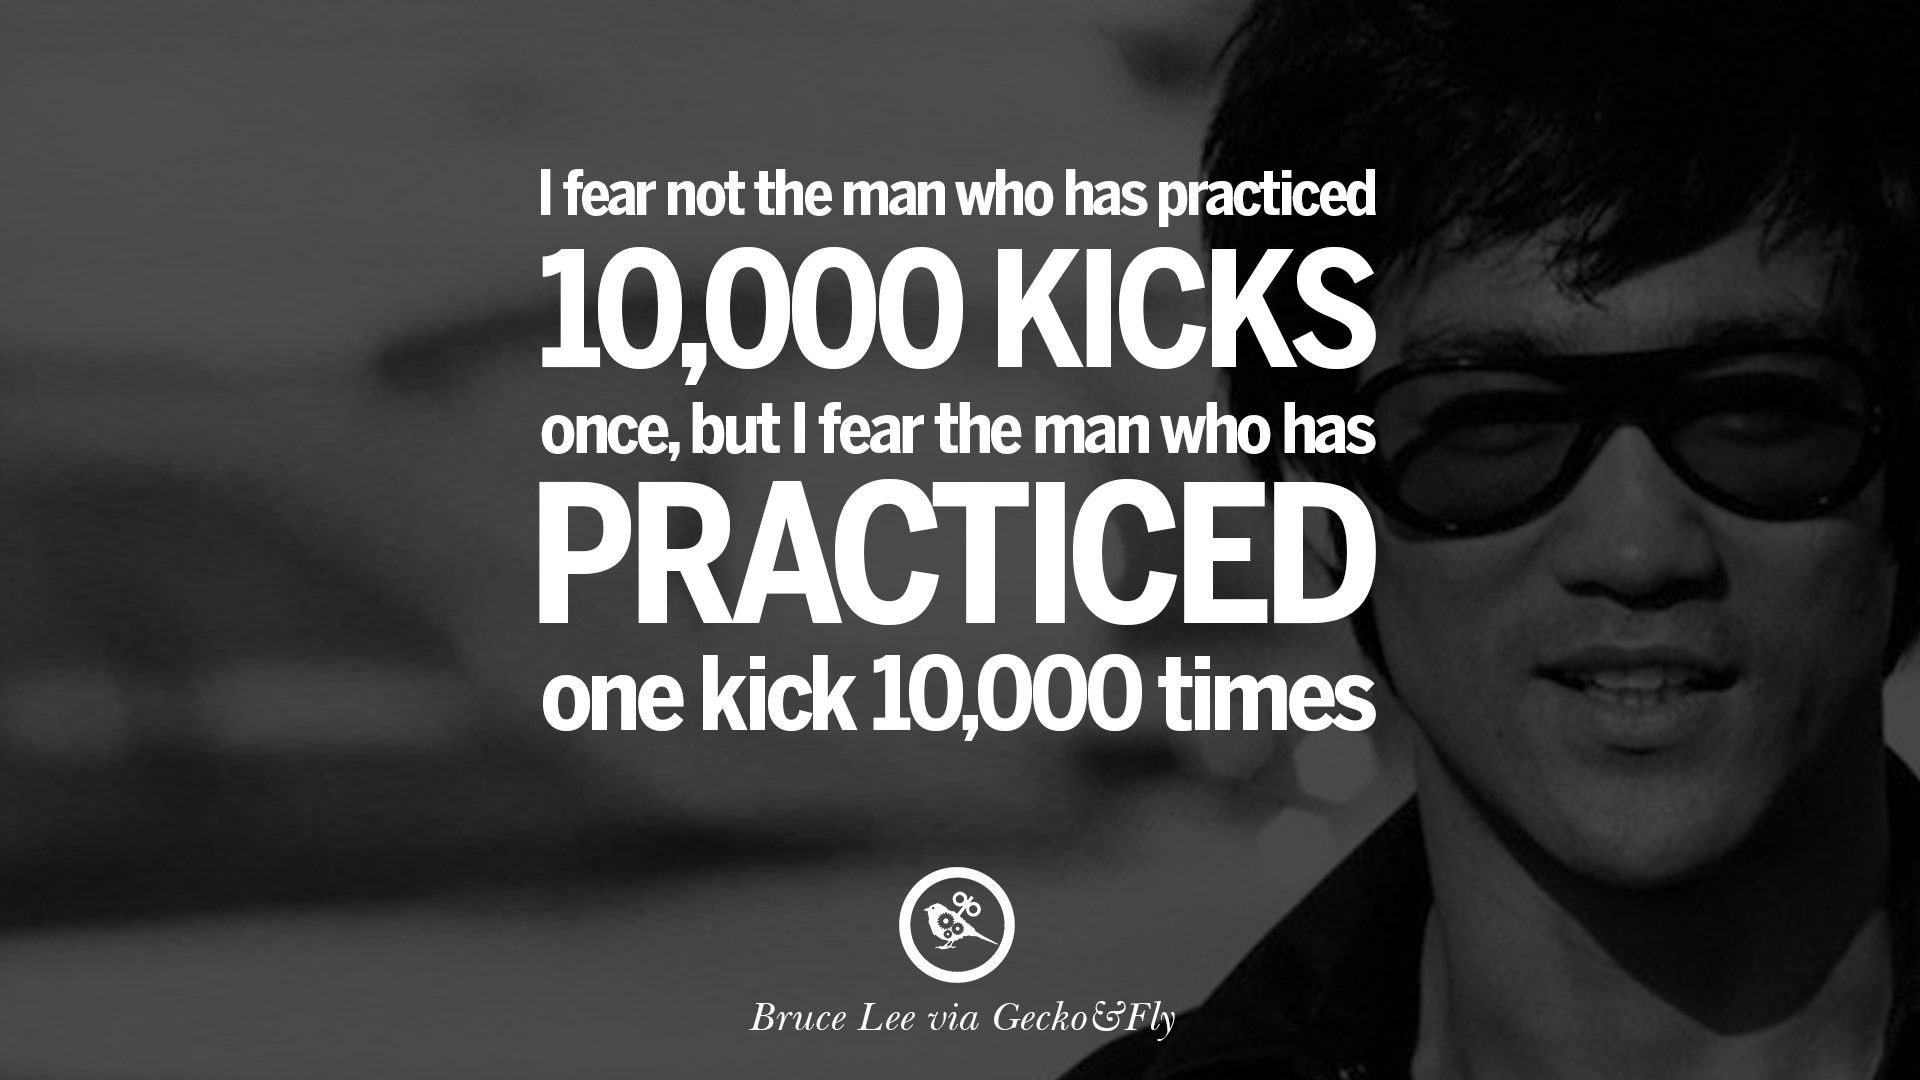 Bruce Lee Quotes Wallpapers Top Free Bruce Lee Quotes Backgrounds Wallpaperaccess